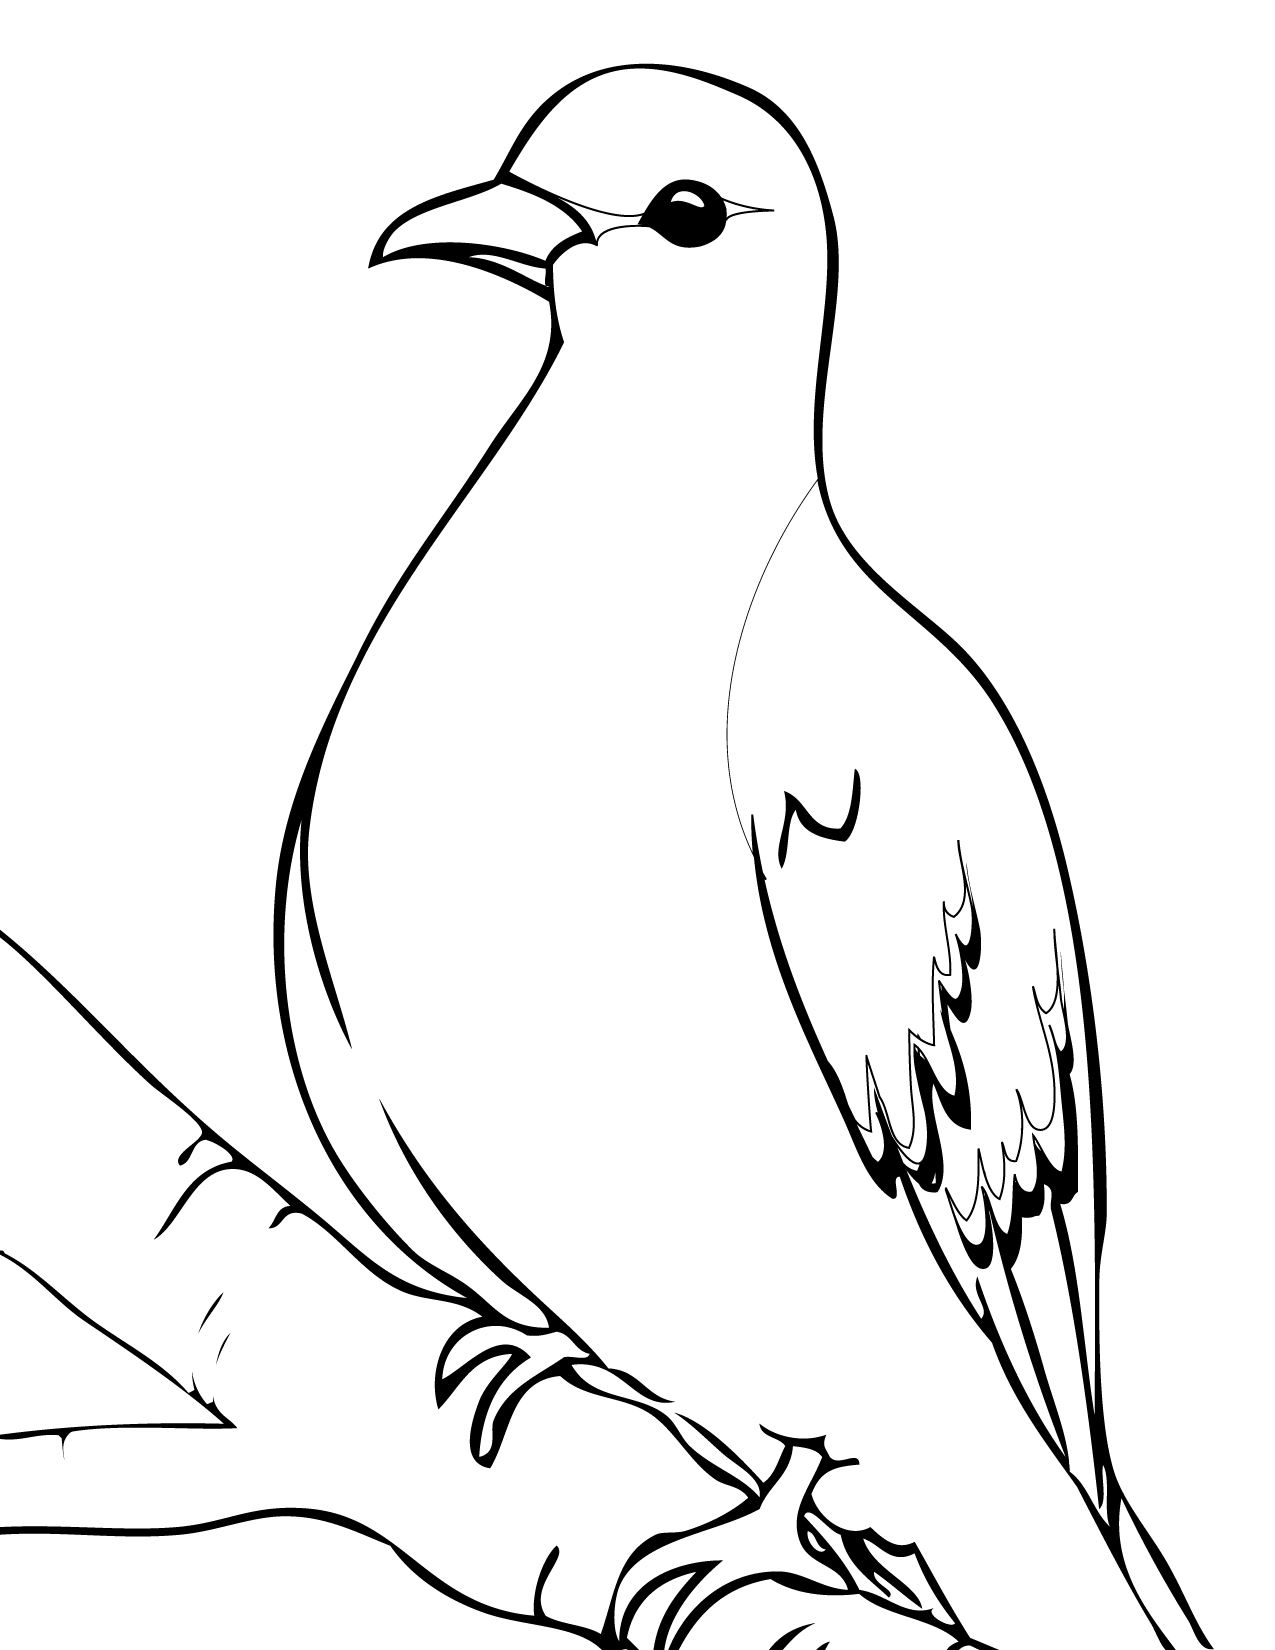 Mourning Dove clipart line drawing Pinterest page page Printables Mourning